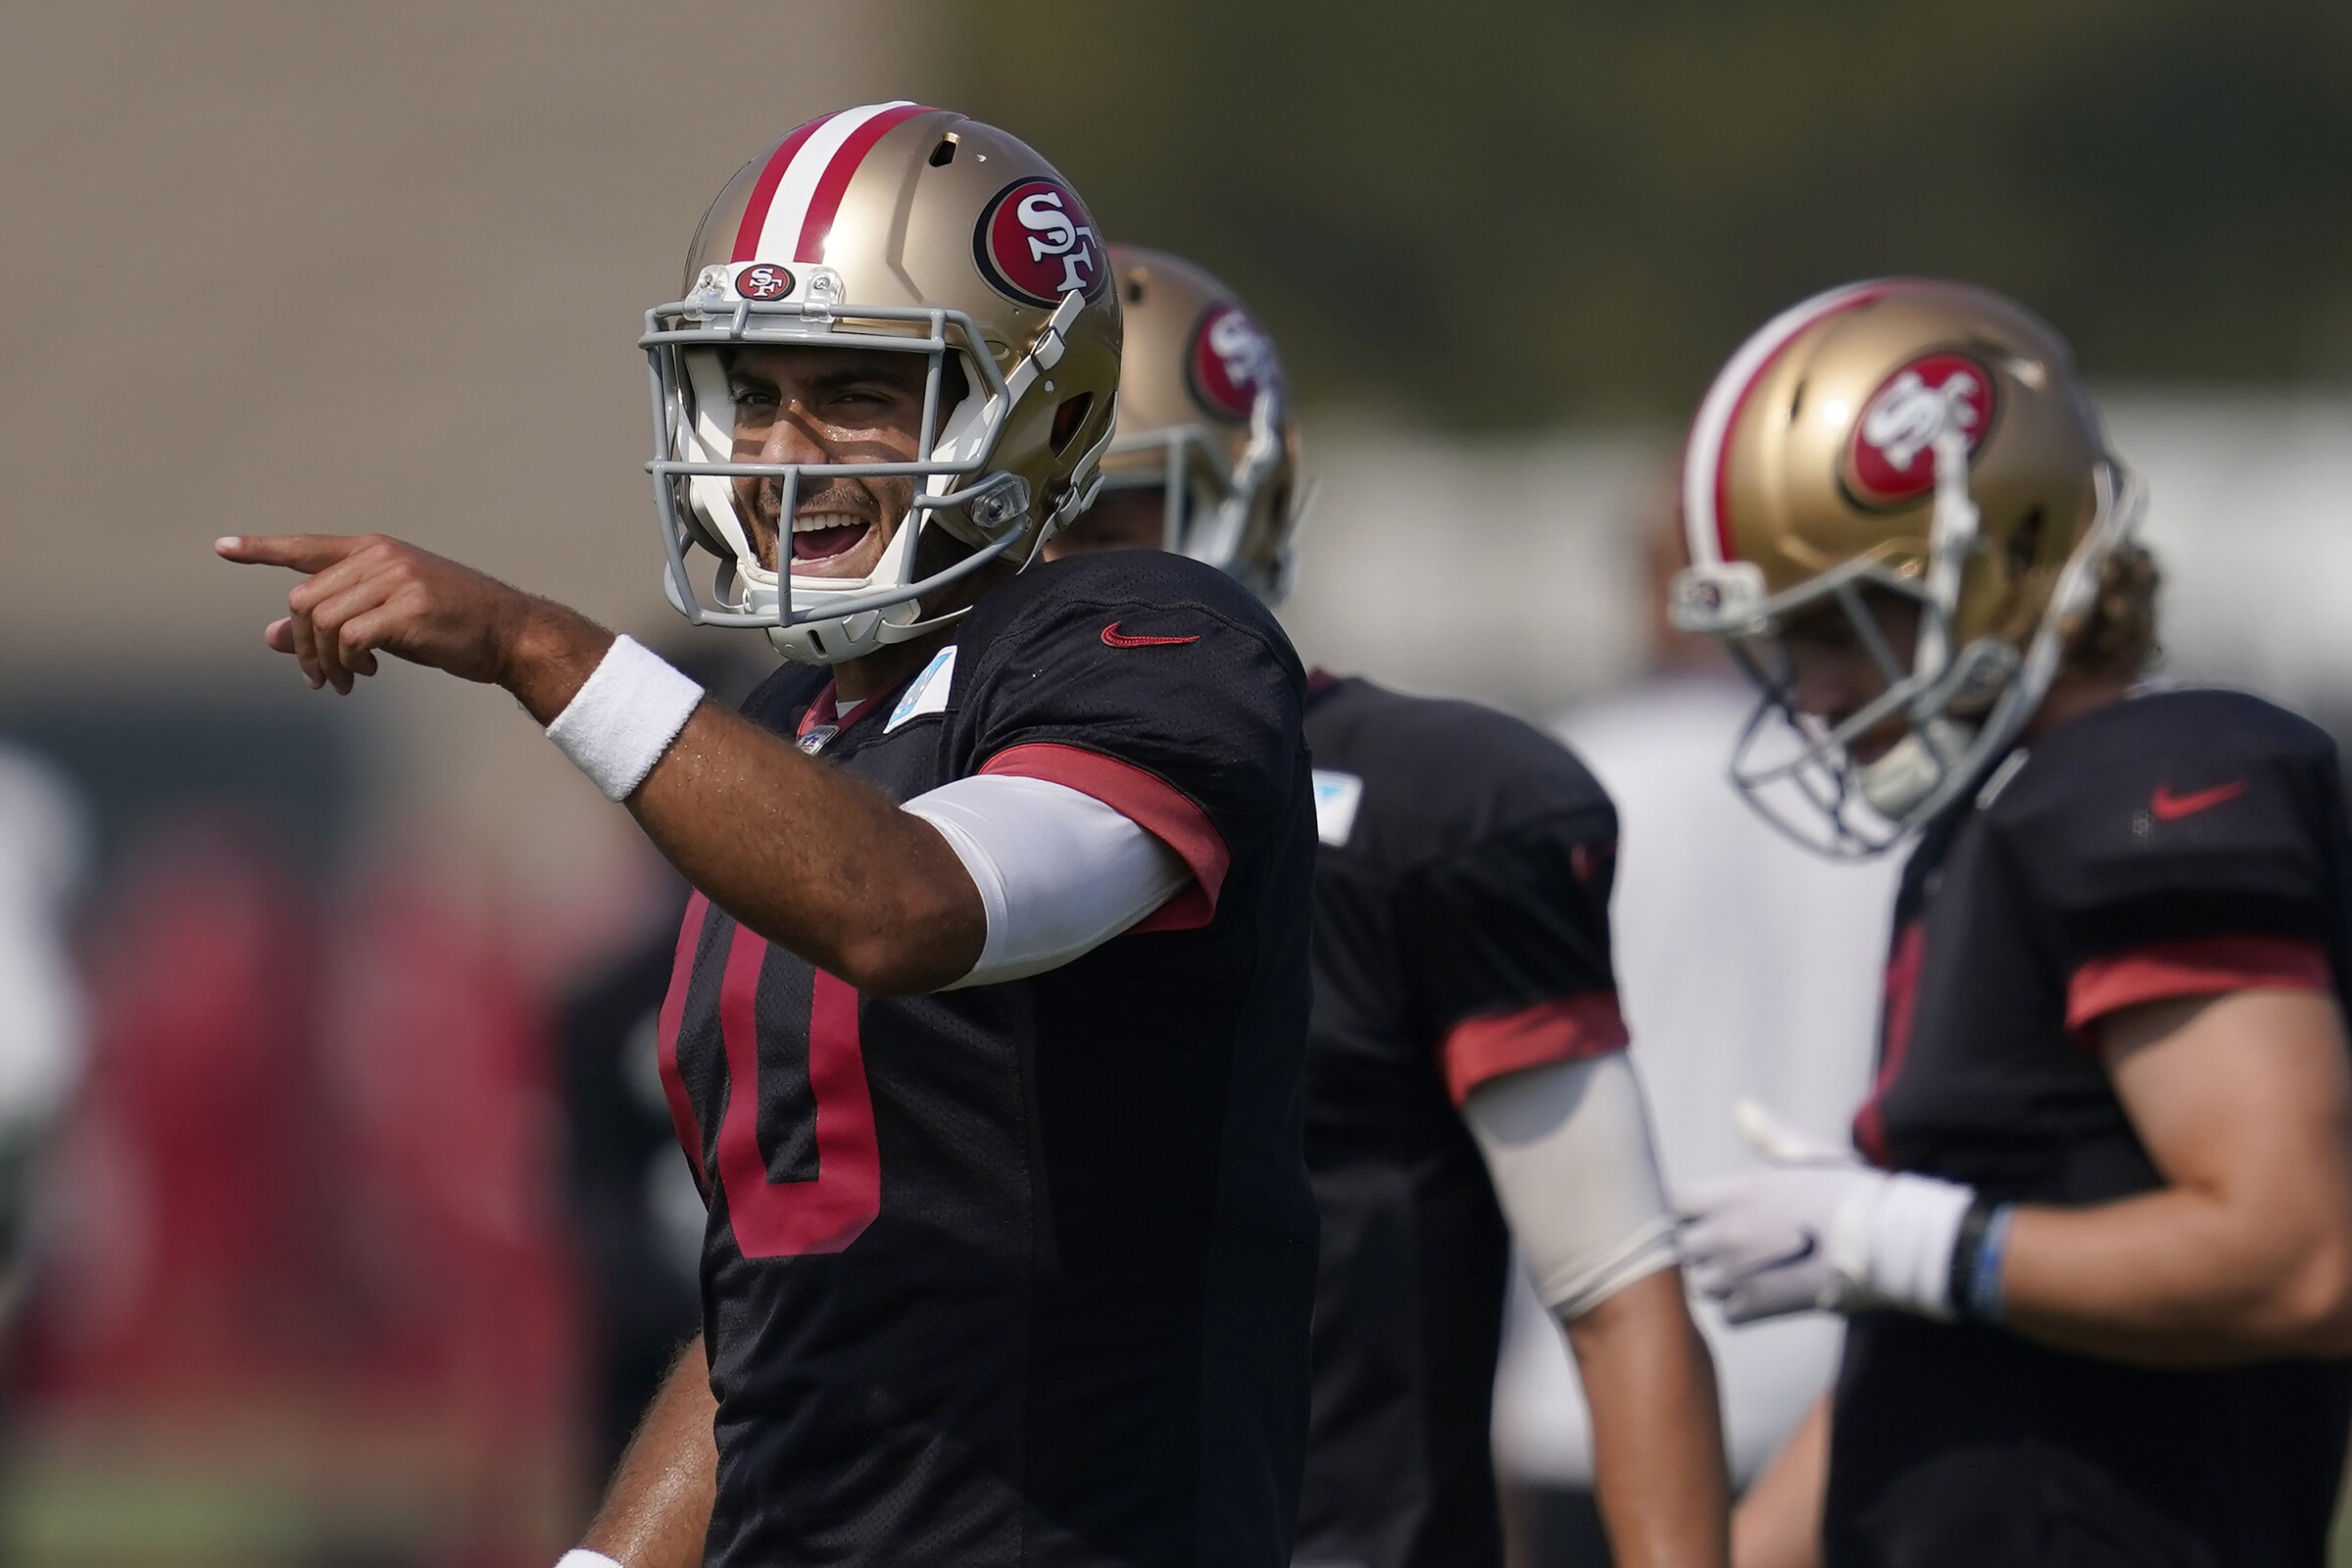 San Francisco 49ers quarterback Jimmy Garoppolo (10) gestures during NFL football practice.